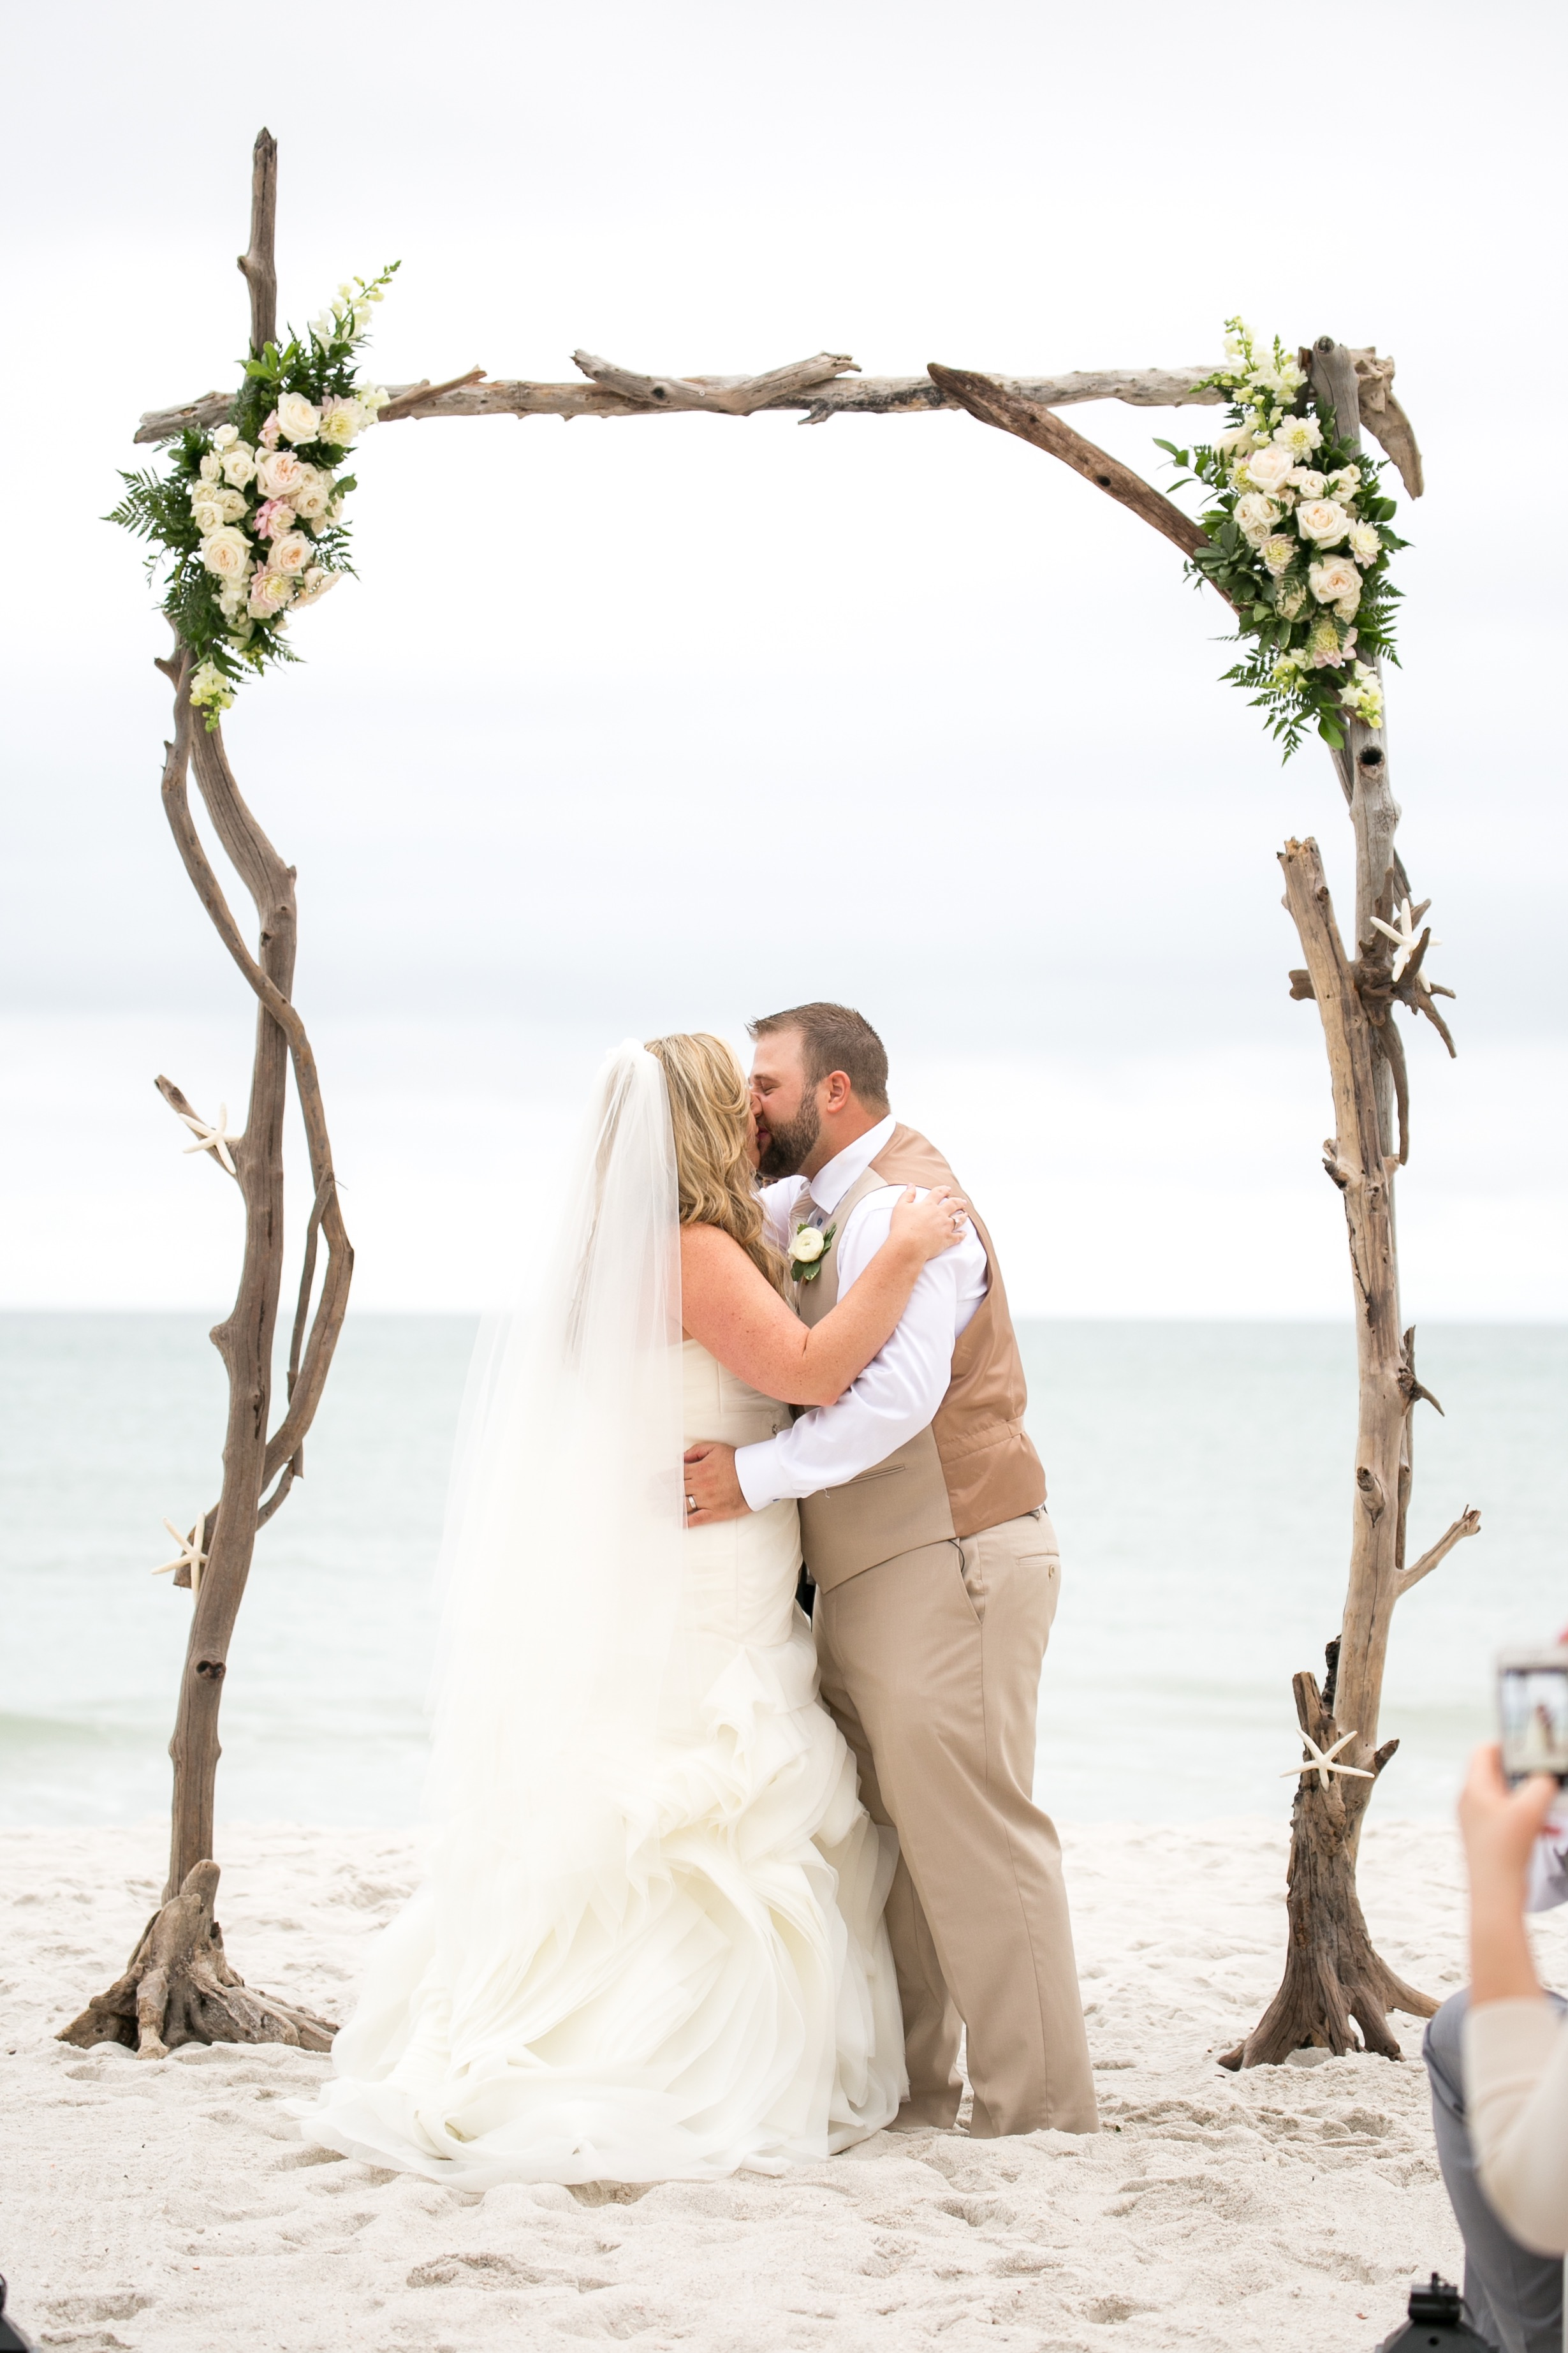 Custom Driftwood arch made and owned by PartyRox Events